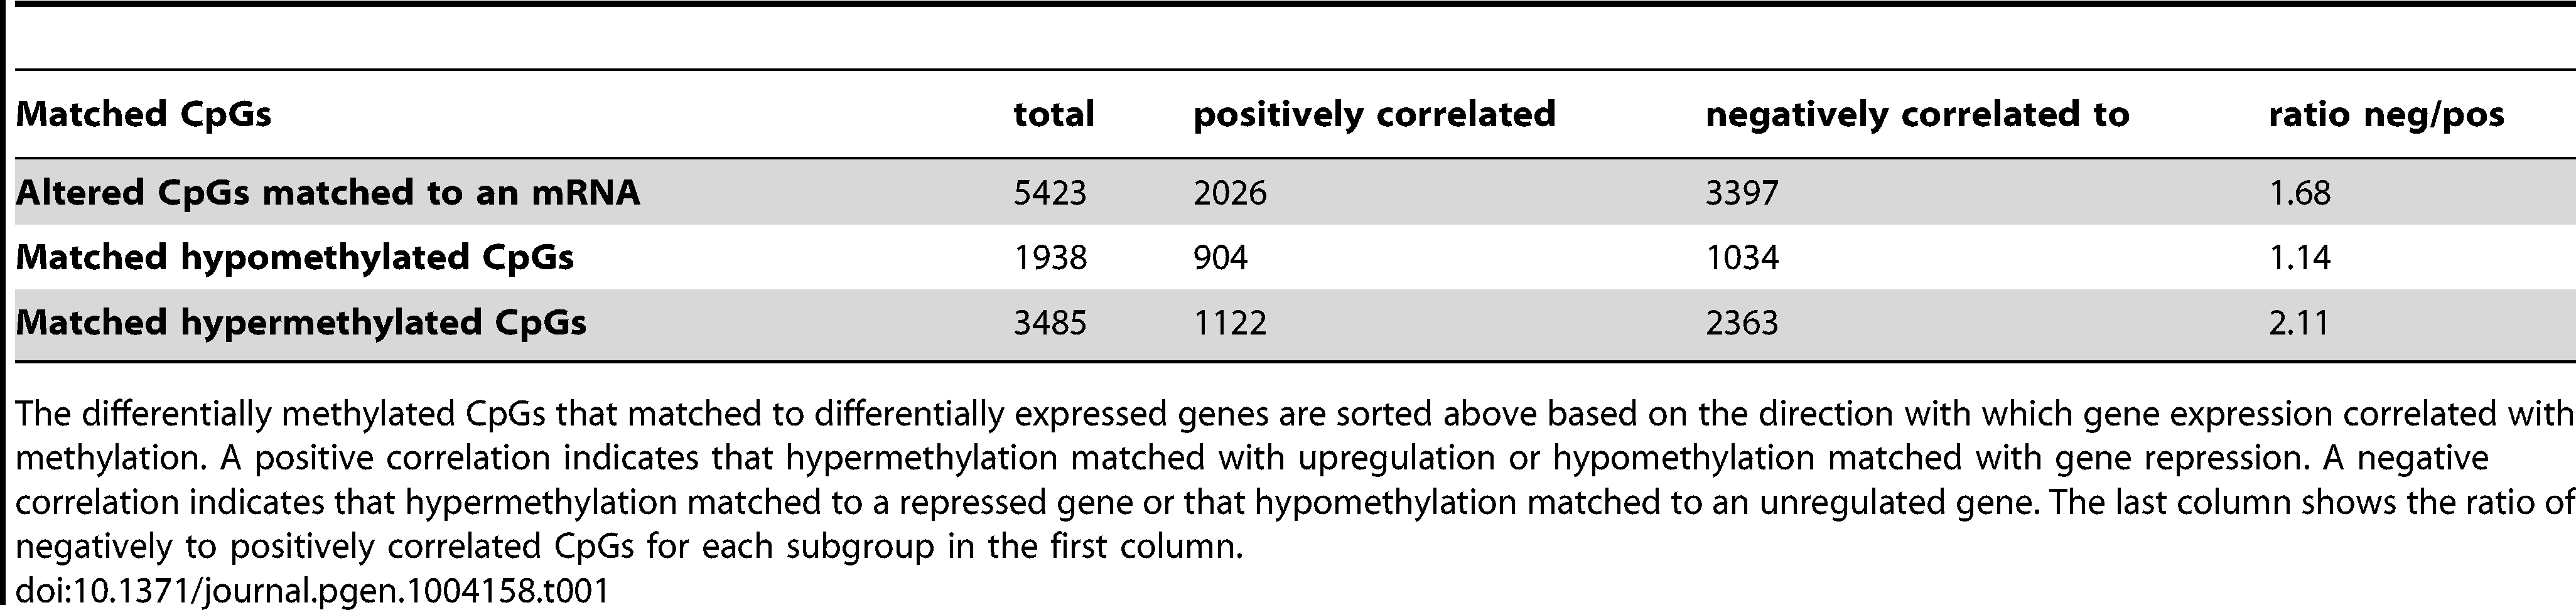 Correlation of methylation with gene expression for matched CpGs.